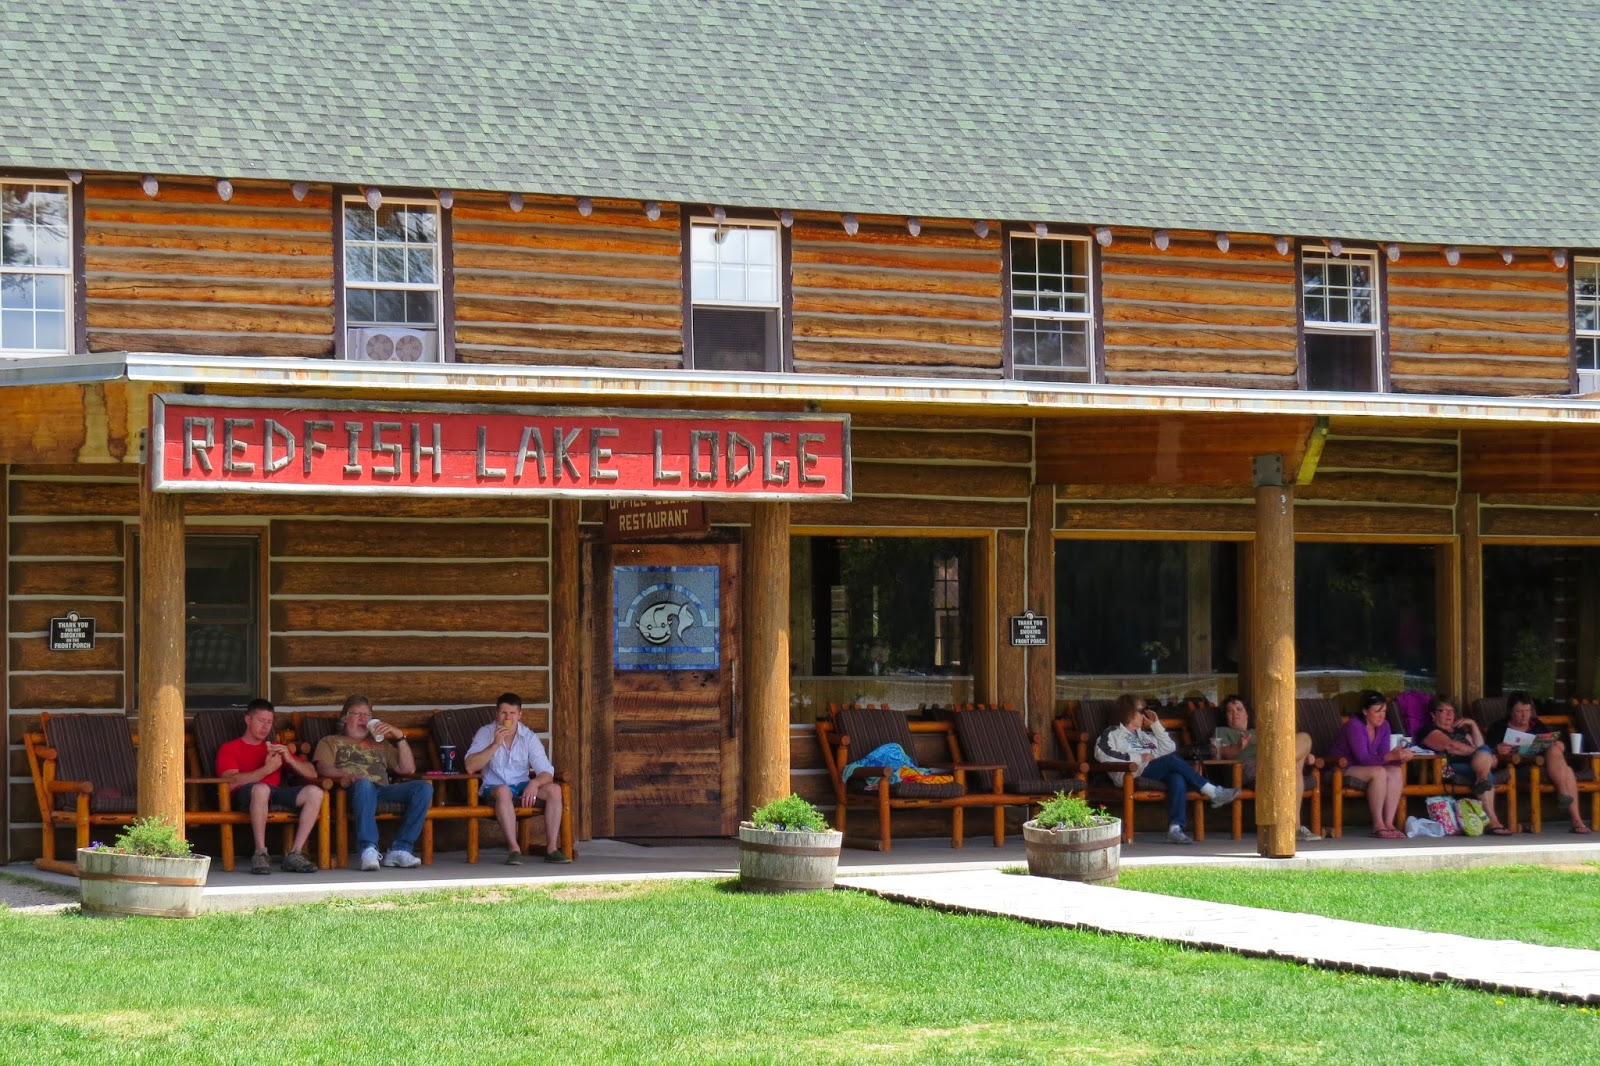 Redfish Lake Lodge in Stanley, Idaho